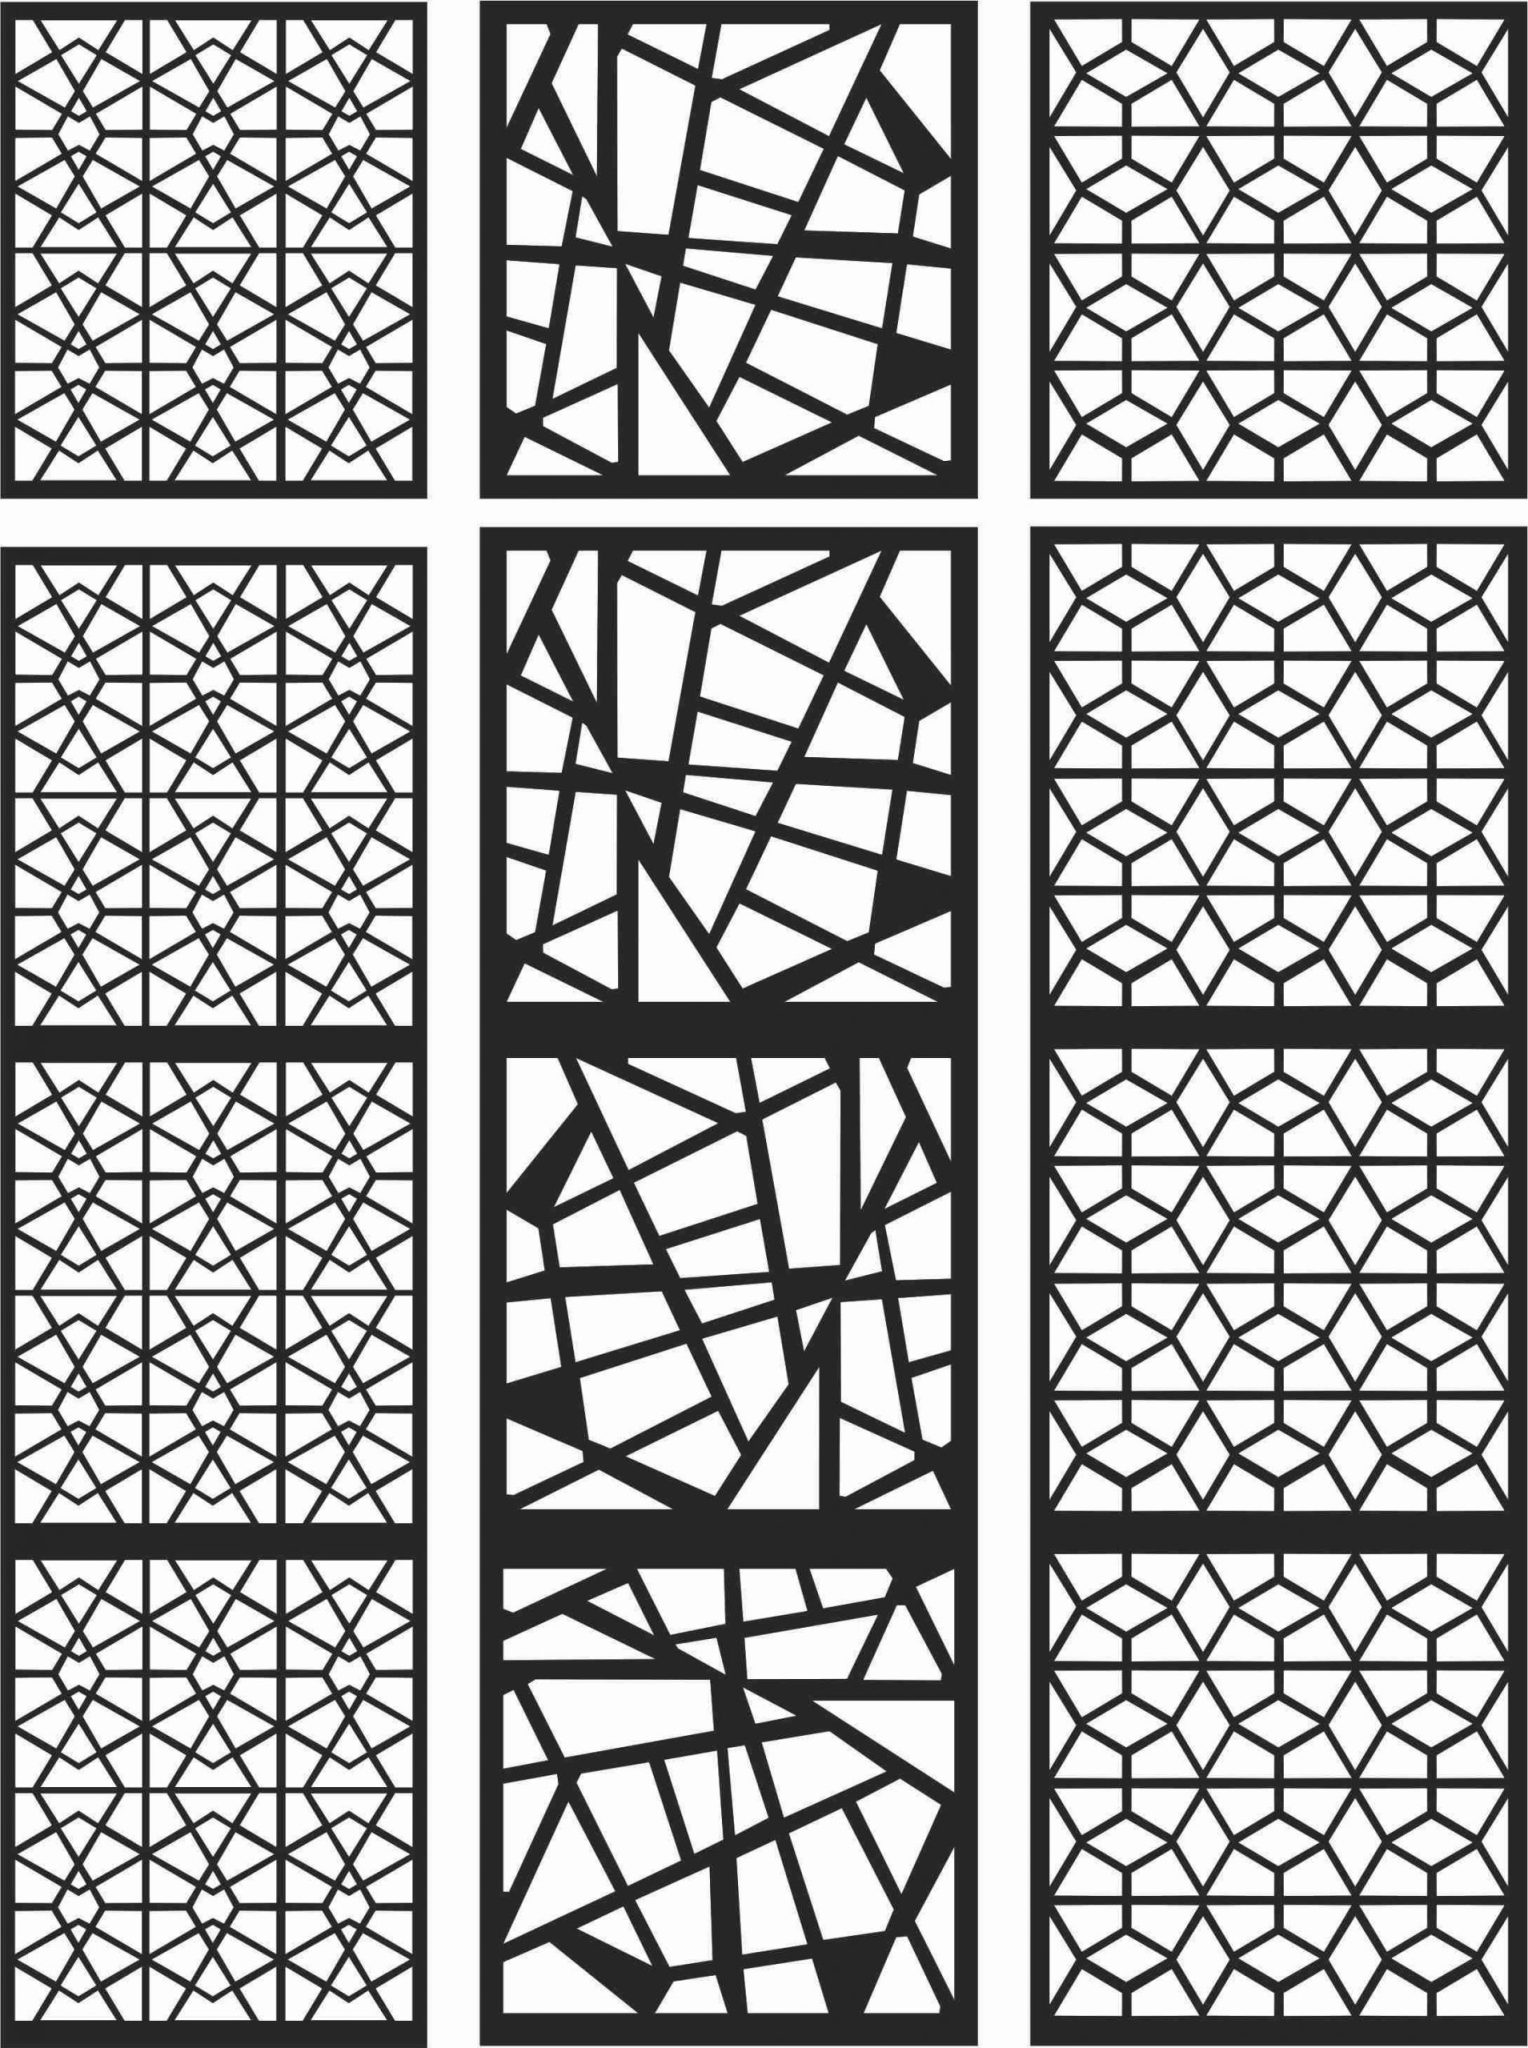 Floral Screen Patterns Design 102 Free DXF File